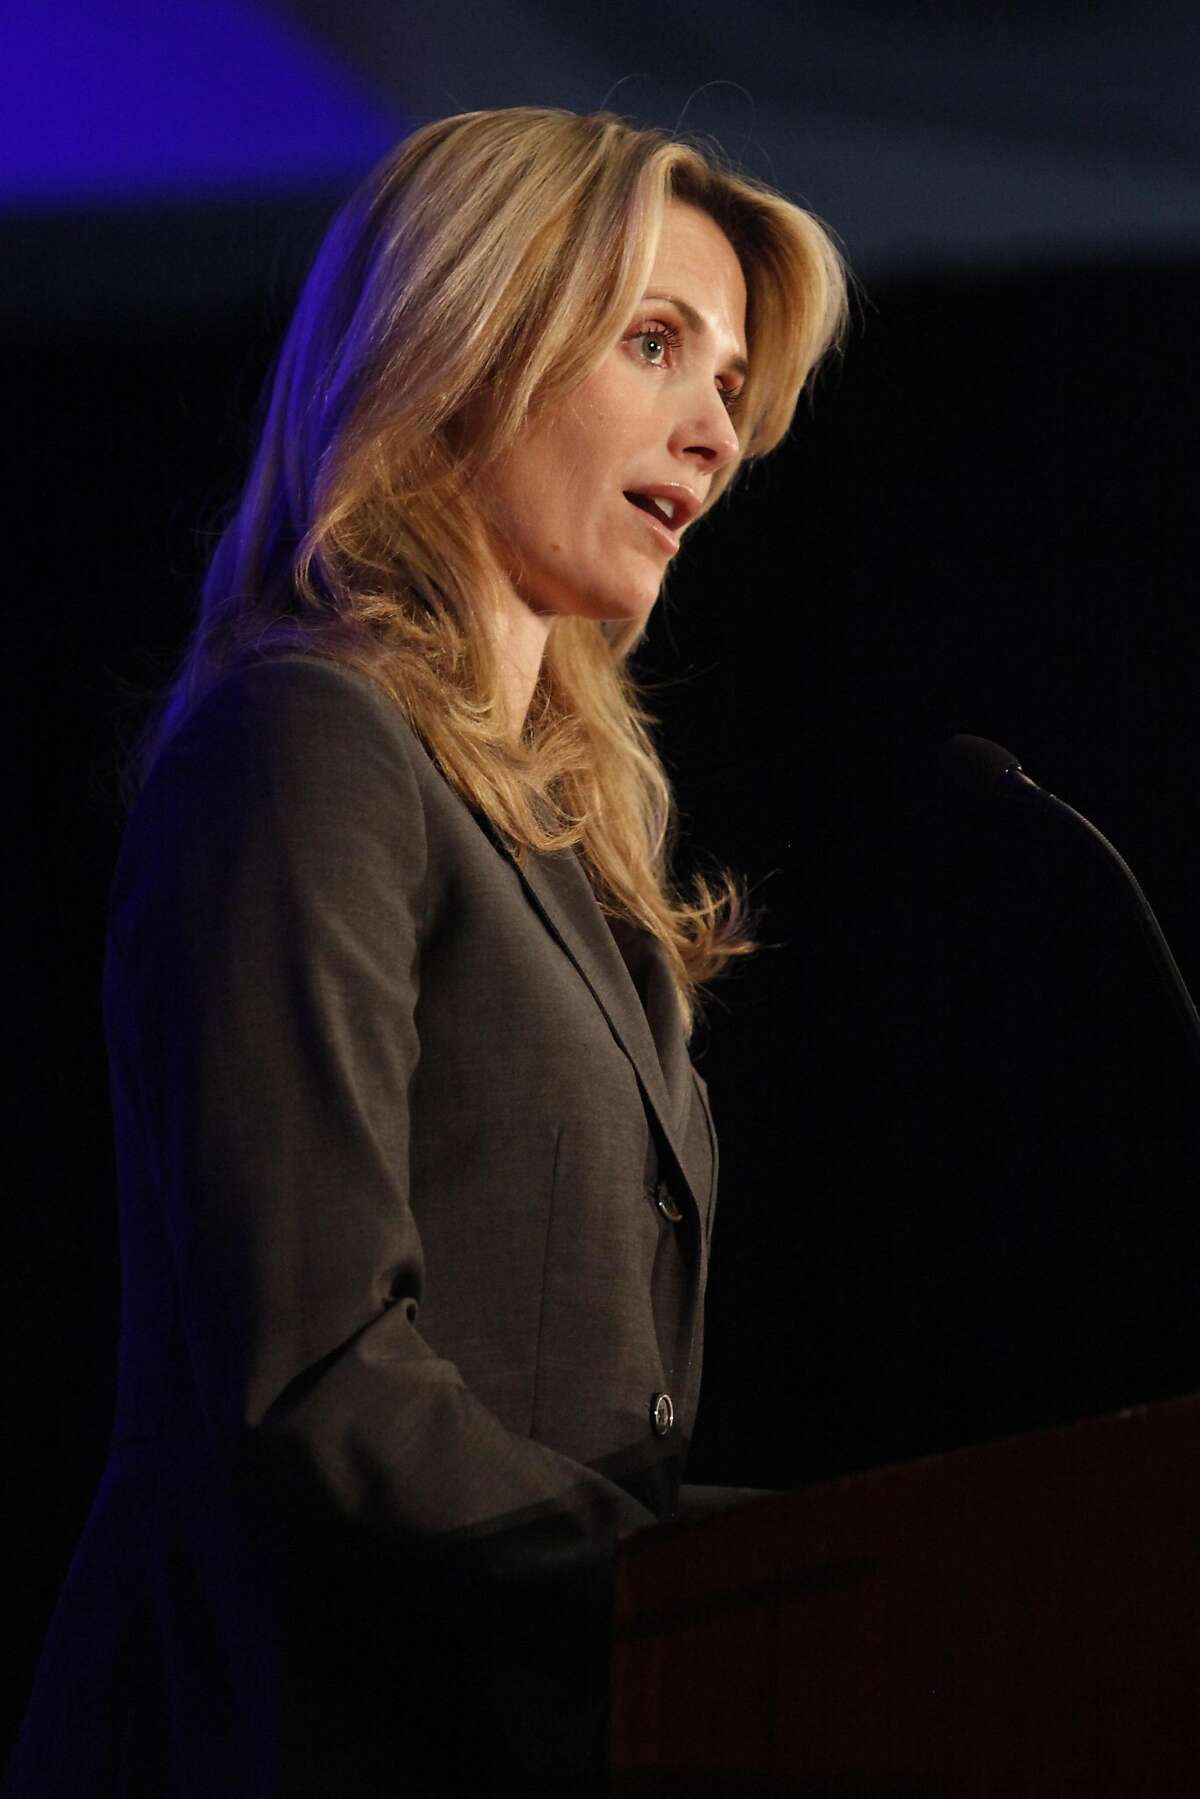 She used to be a registered Republican Siebel Newsom grew up in a politically conservative family, and was a registered Republican until 2008.